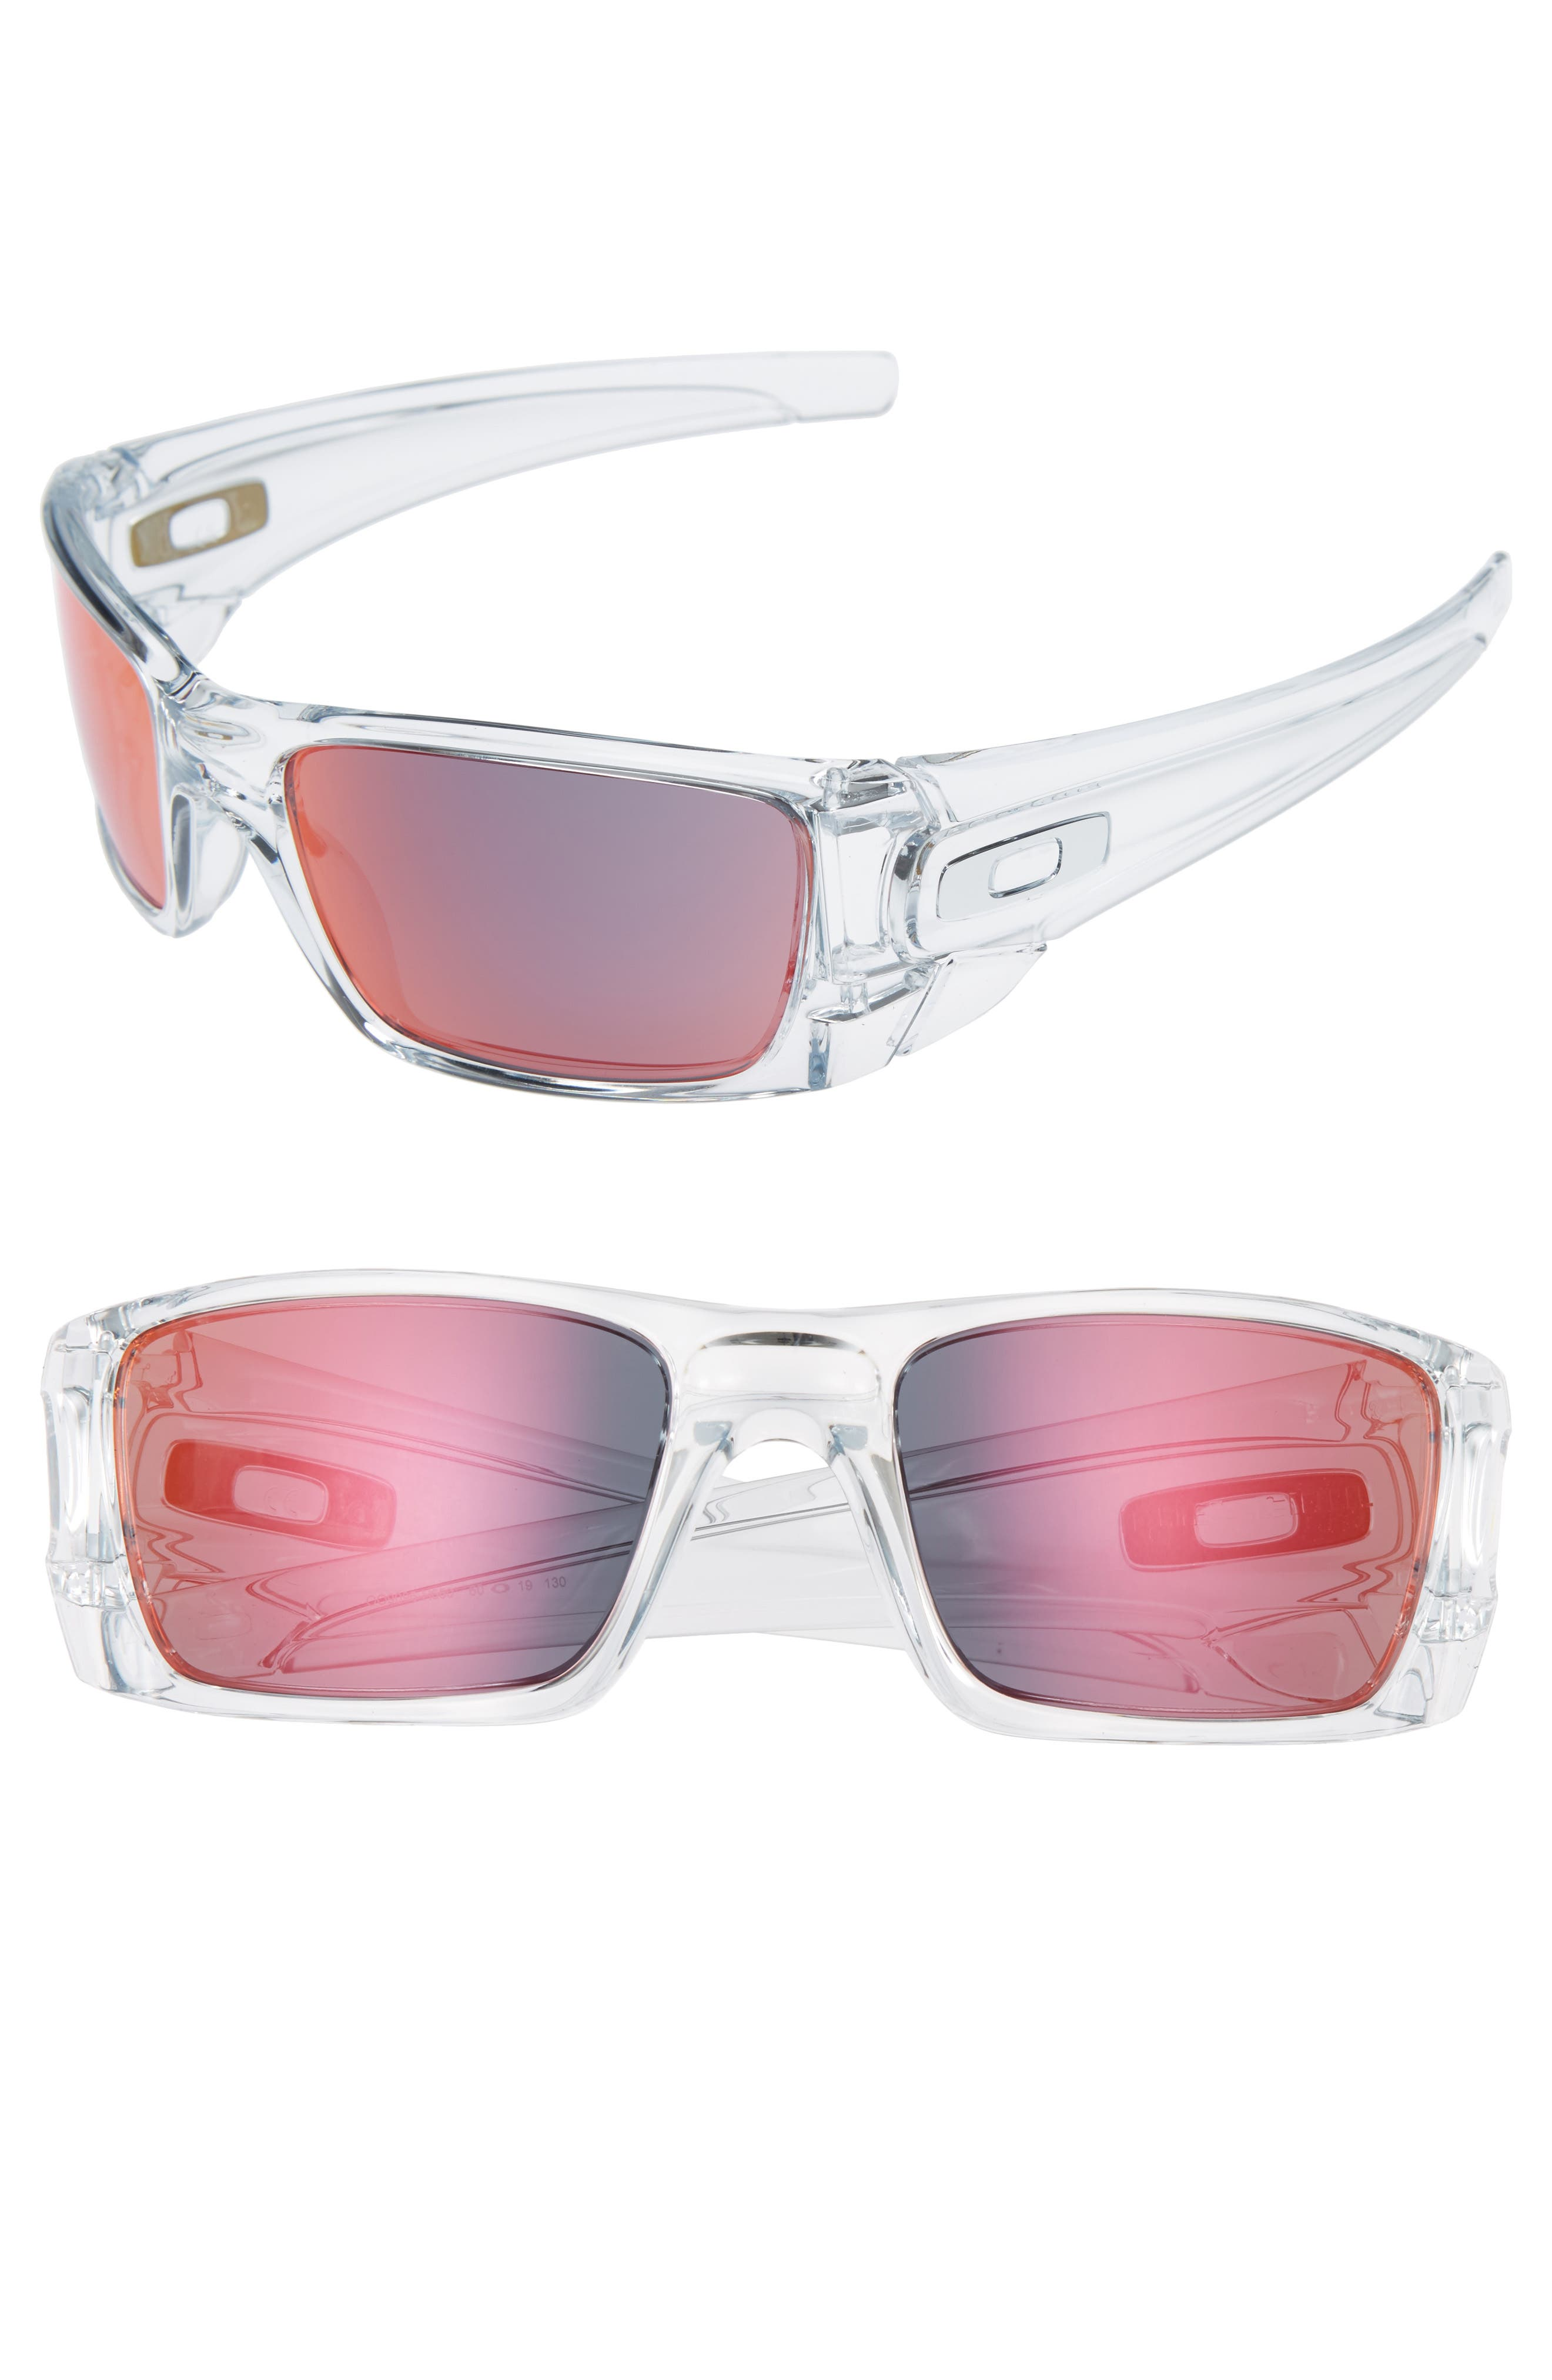 Fuel Cell 60mm Sunglasses,                             Main thumbnail 1, color,                             101